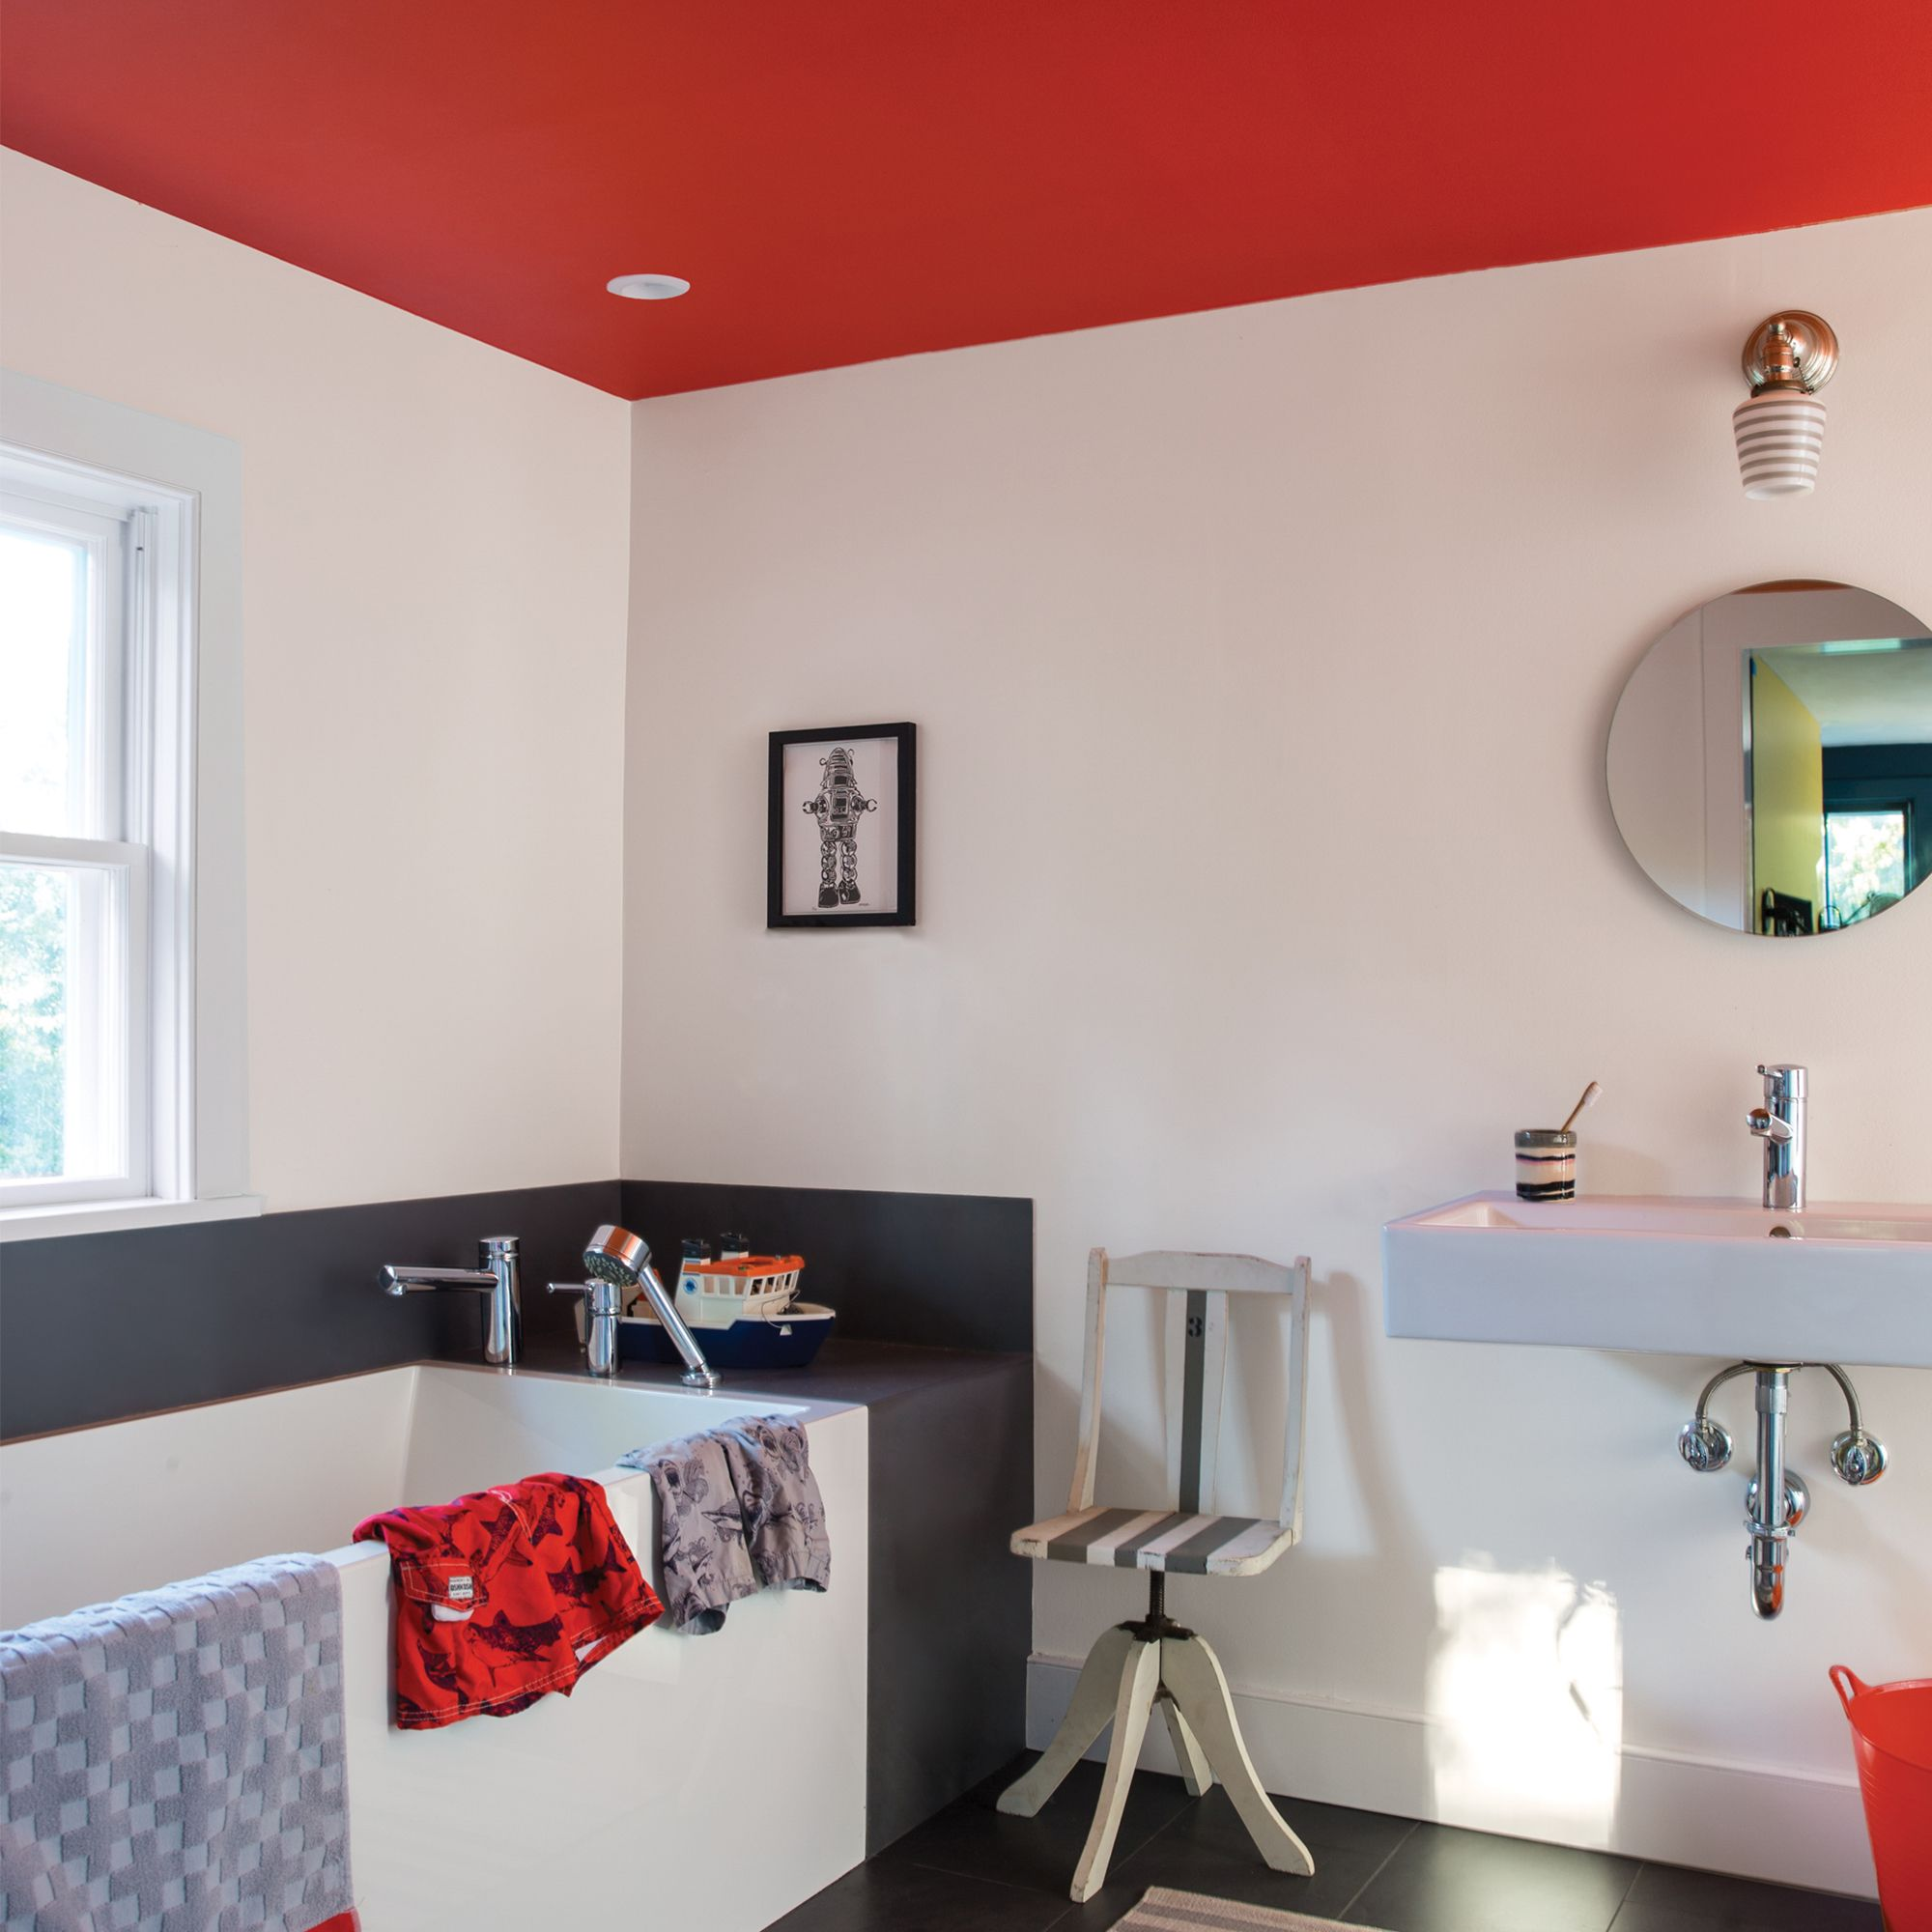 Bathroom with red/orange ceiling